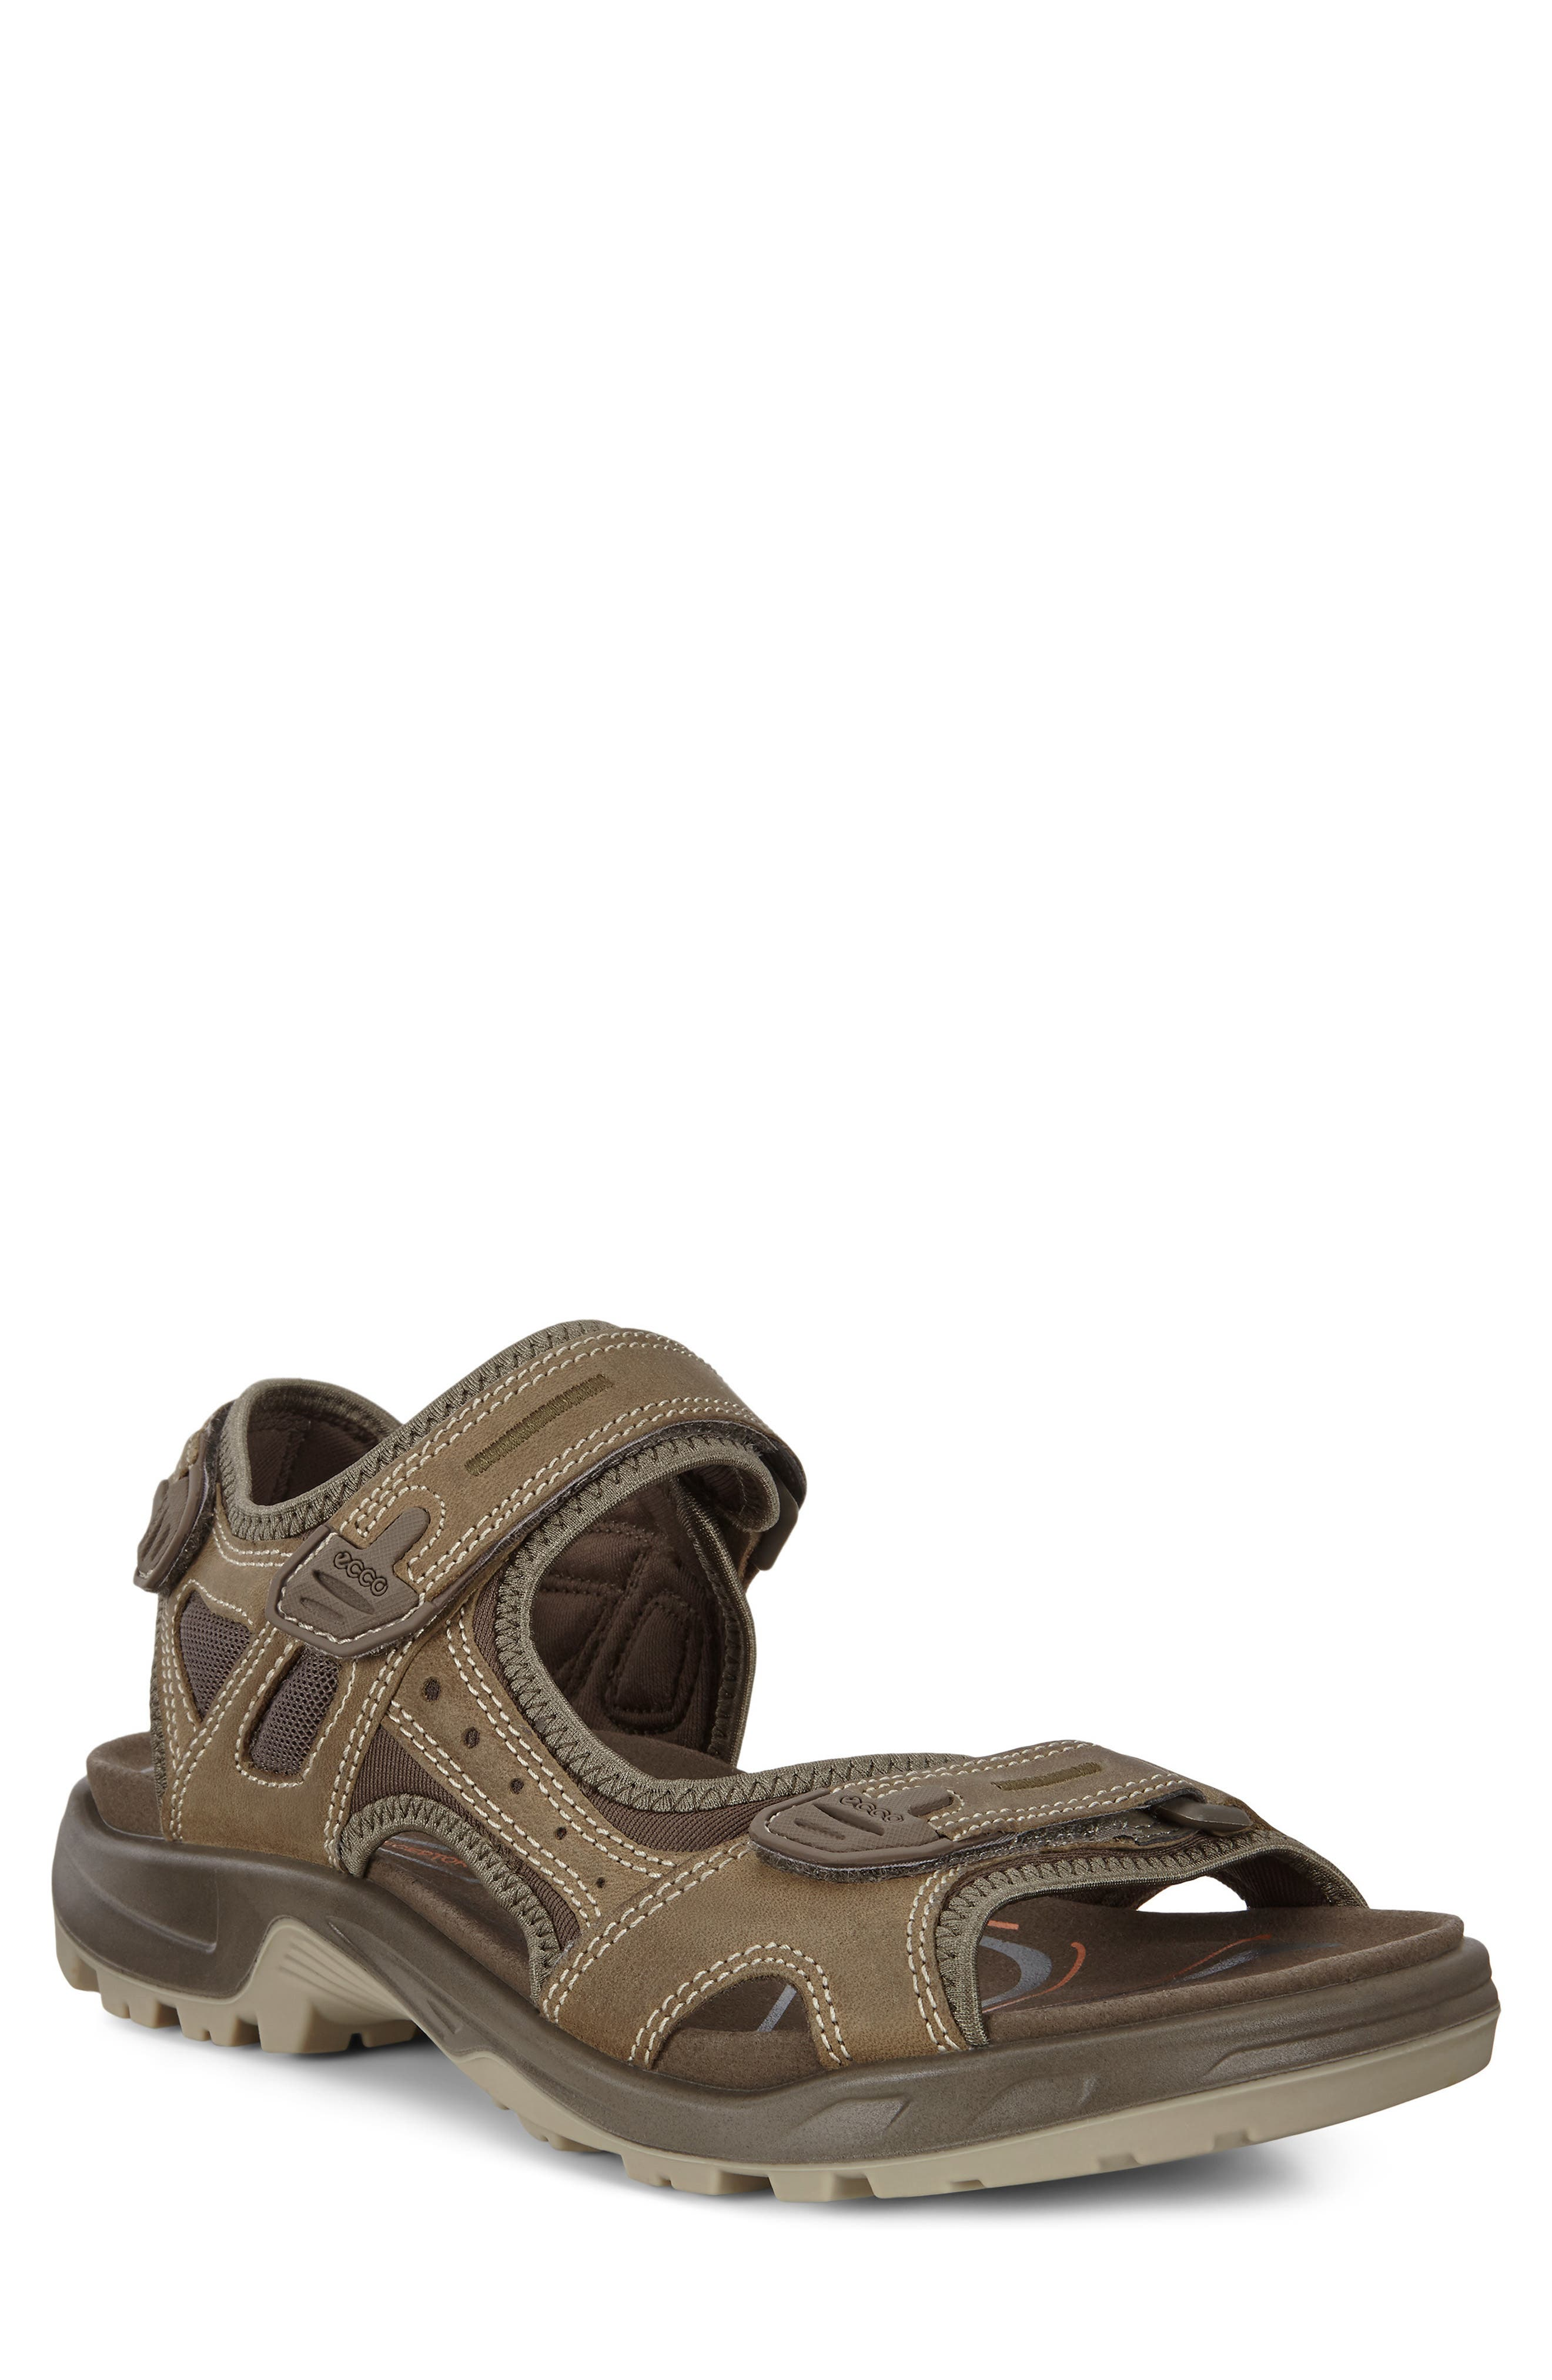 Ecco Flora Sandal Girls black